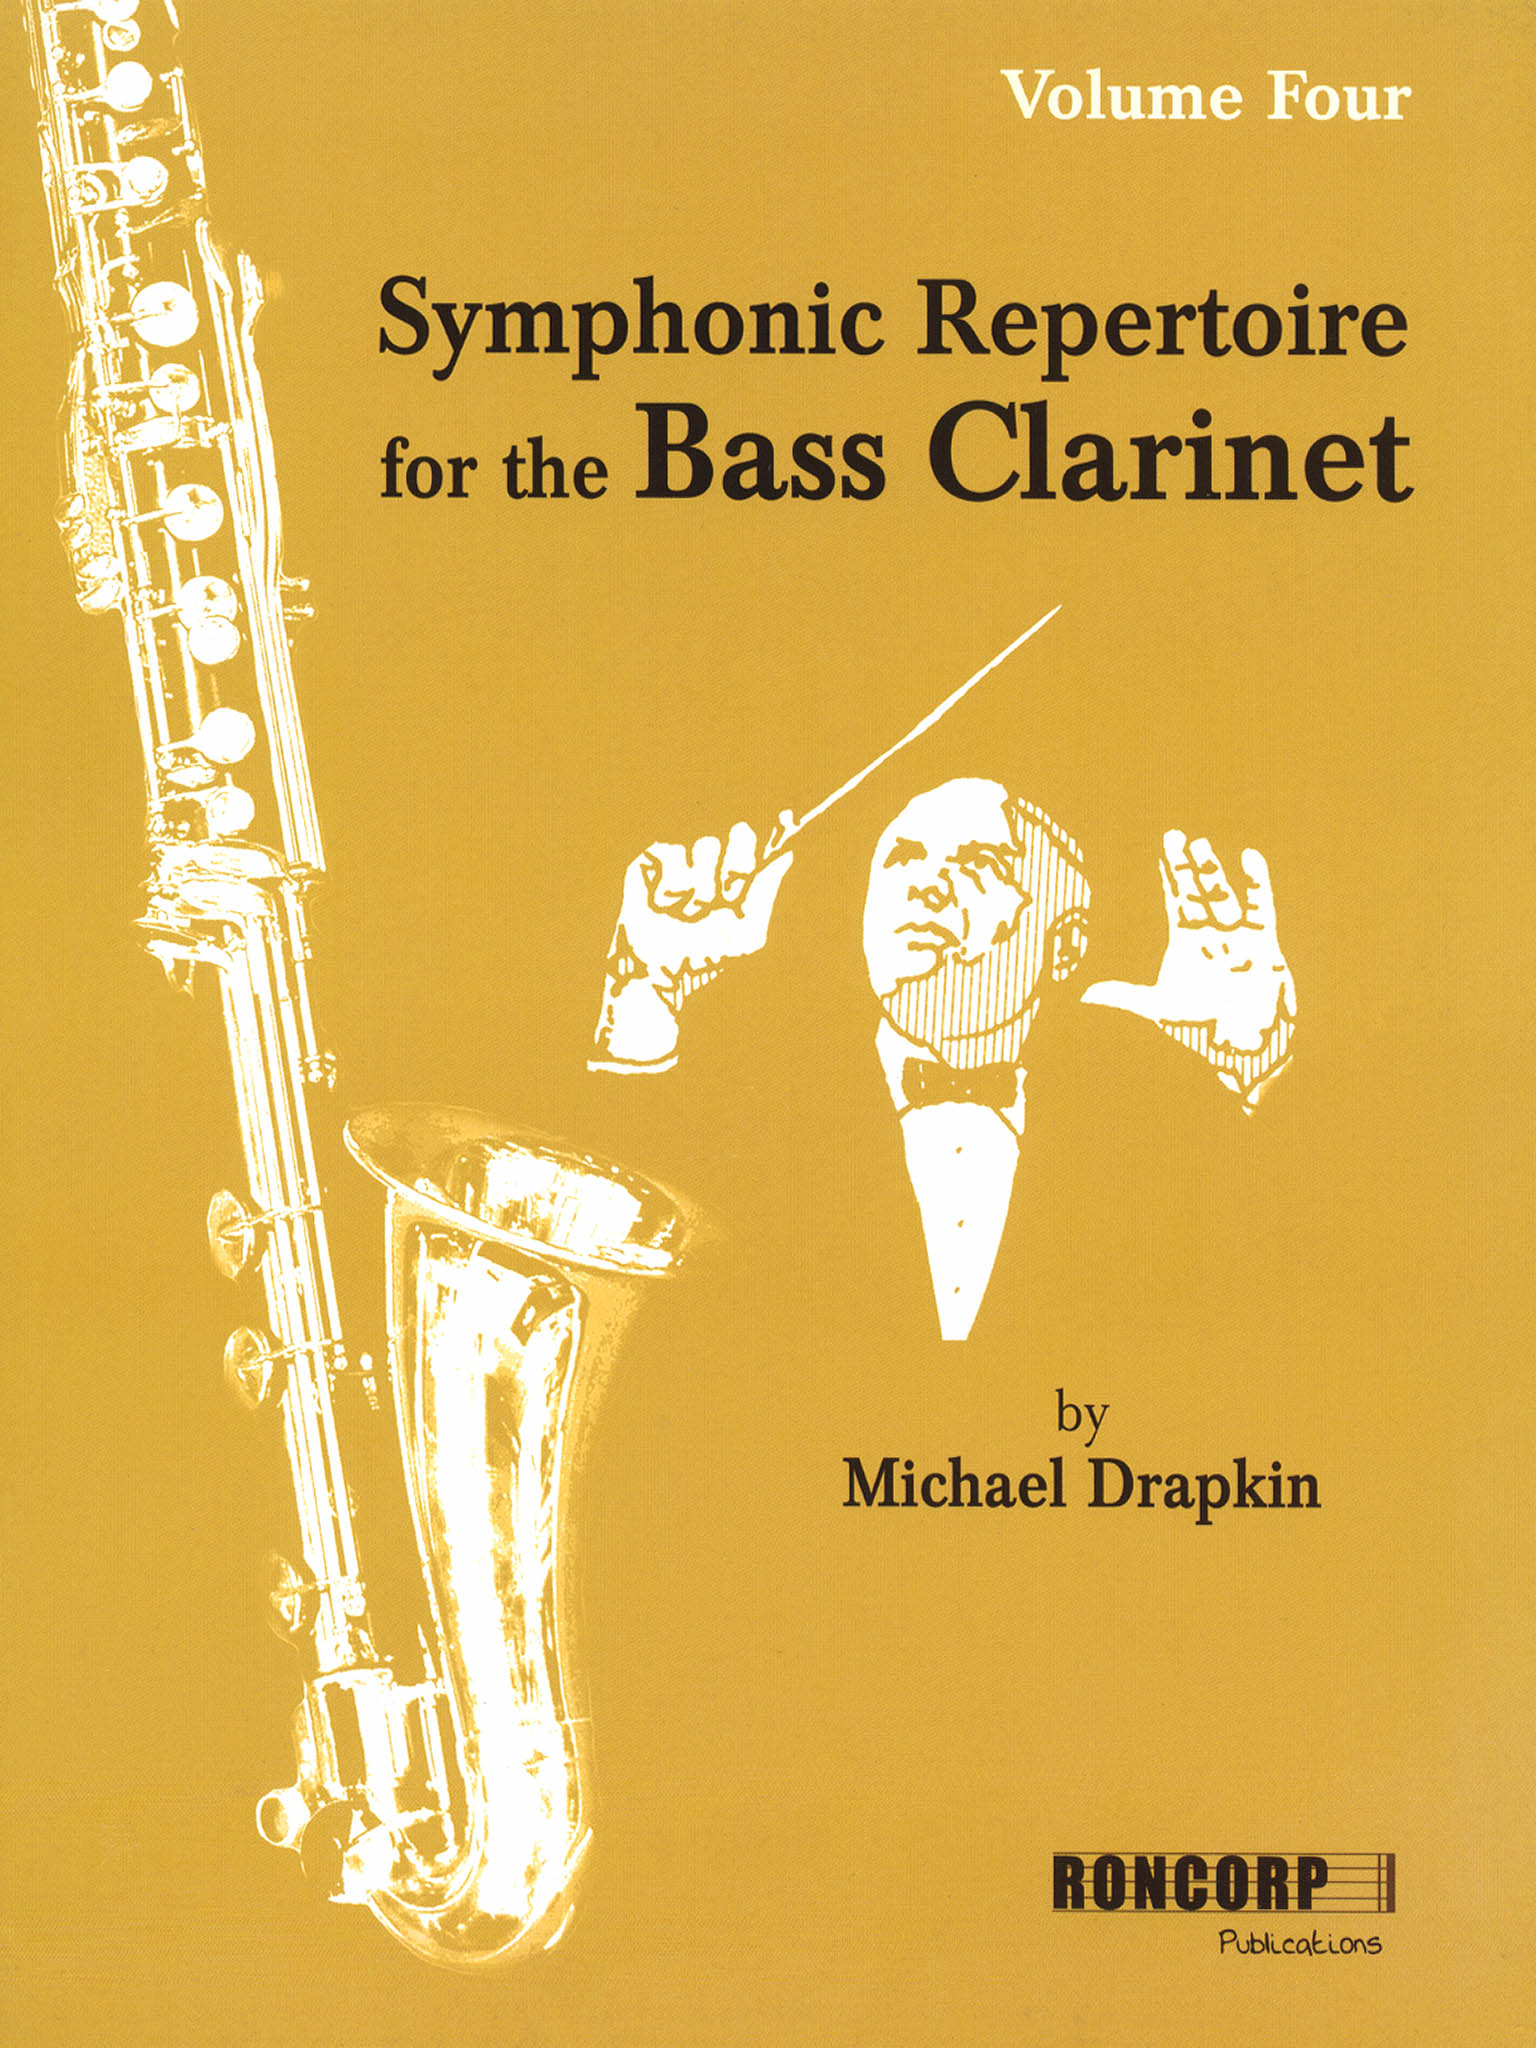 Symphonic Repertoire for the Bass Clarinet, Volume 4 Cover